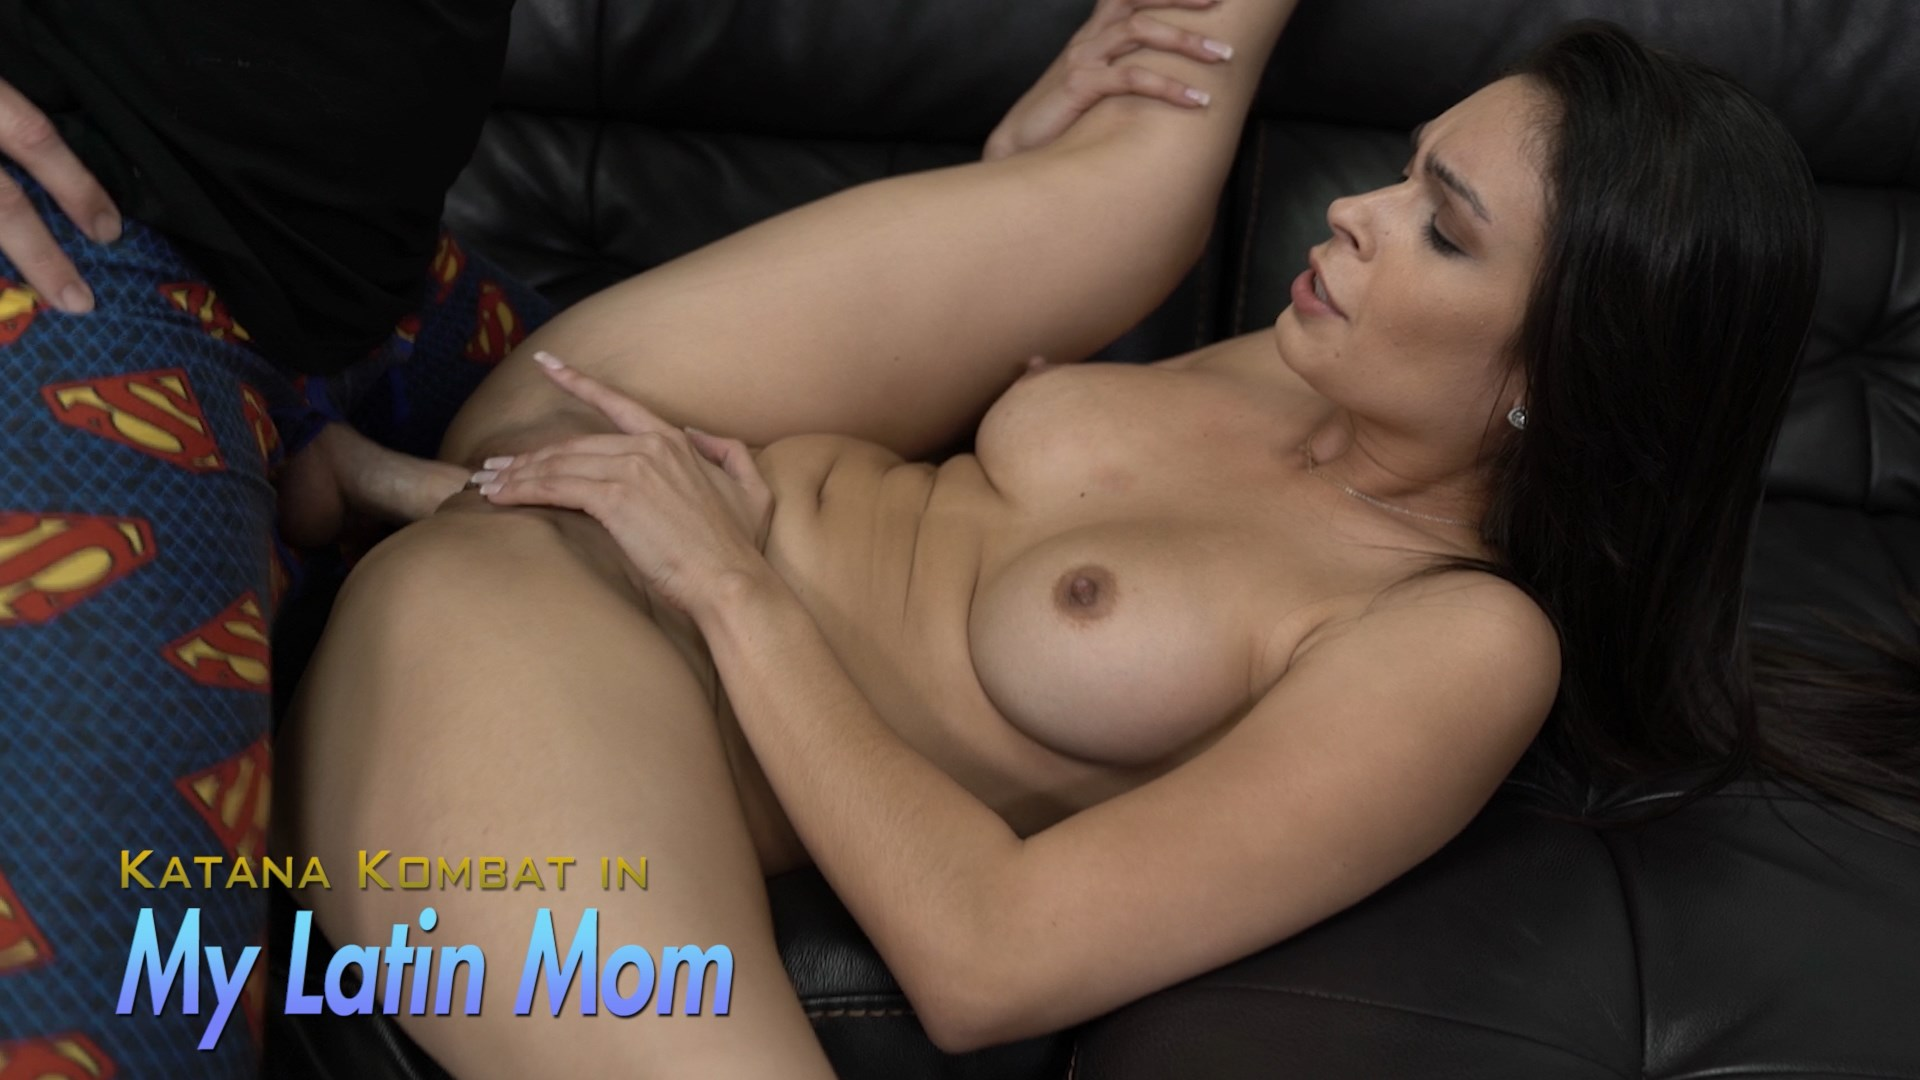 Jerky Wives - Katana Kombat in My Latin Mom